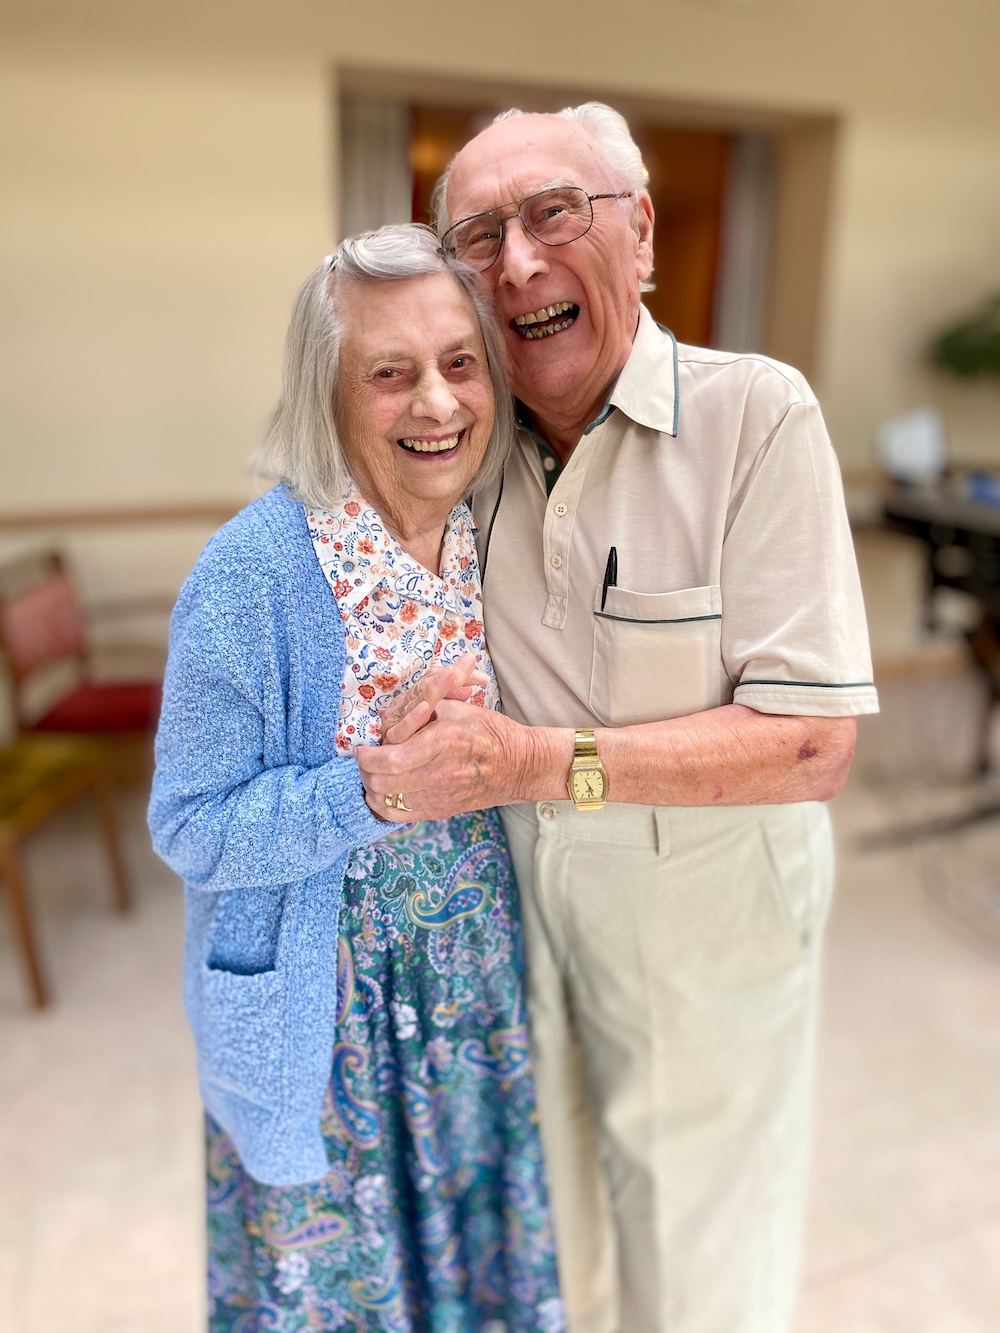 Bryan and Margaret reunited at Care Home, Hitchin